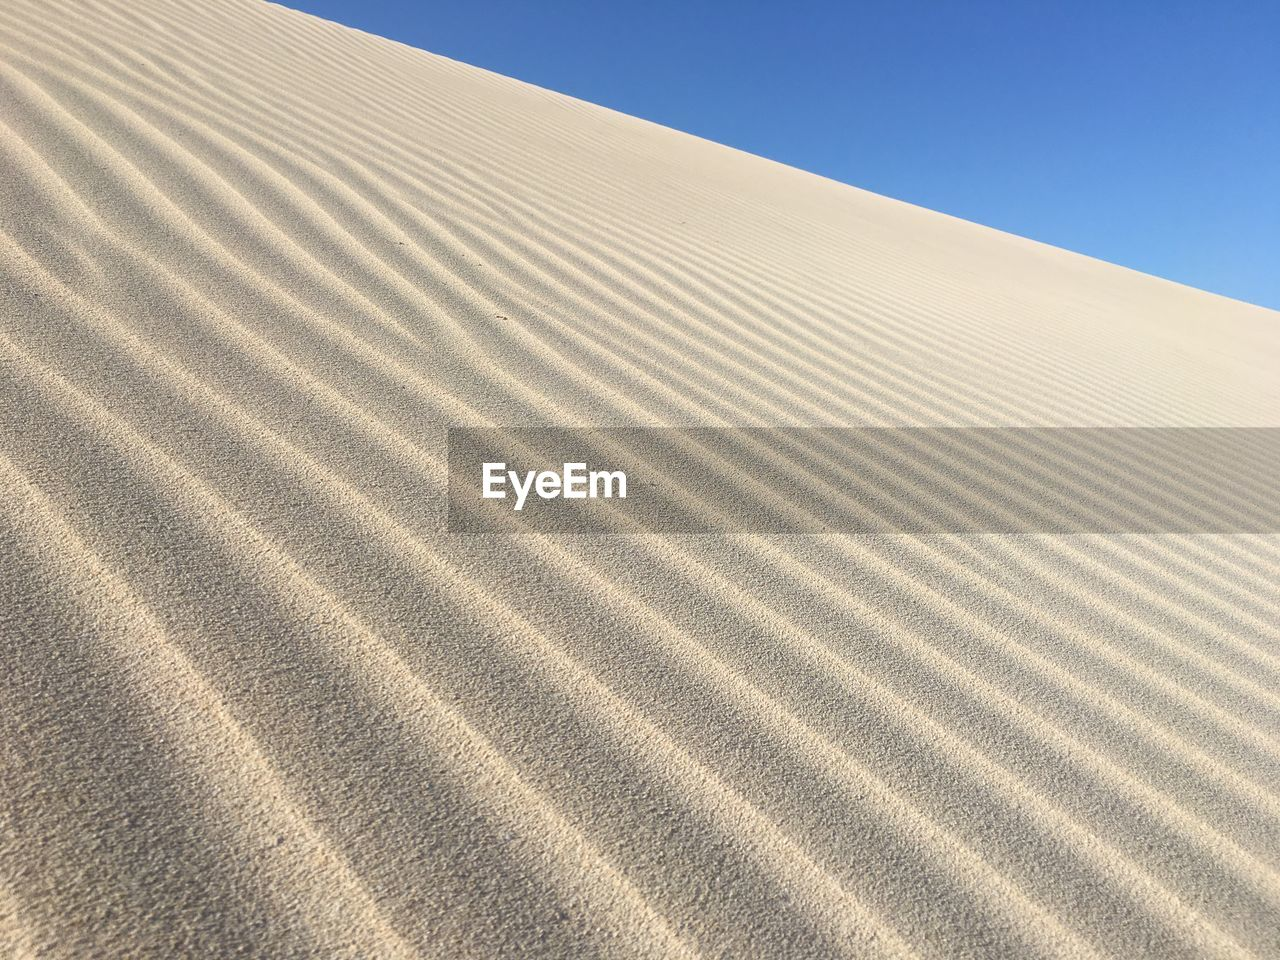 sand dune, sand, desert, land, sky, landscape, climate, arid climate, pattern, nature, scenics - nature, clear sky, no people, day, tranquility, wave pattern, tranquil scene, sunlight, beauty in nature, blue, outdoors